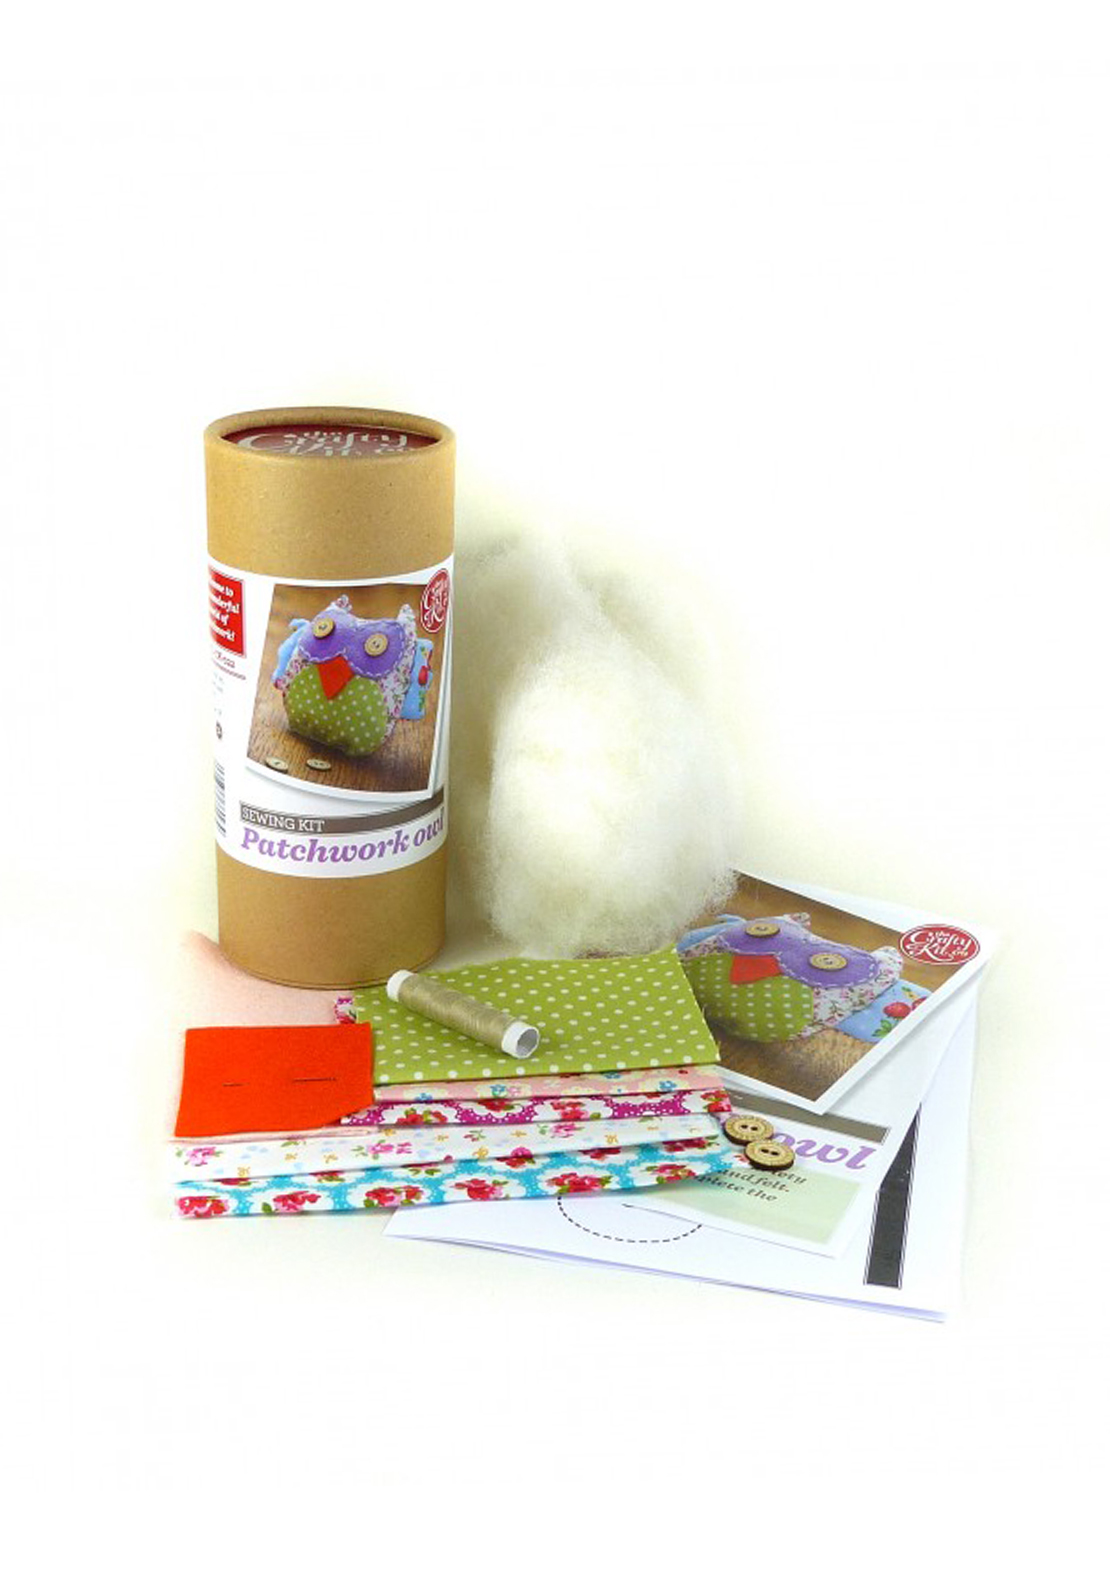 The Crafty Kit Co. Patchwork Owl Sewing Kit